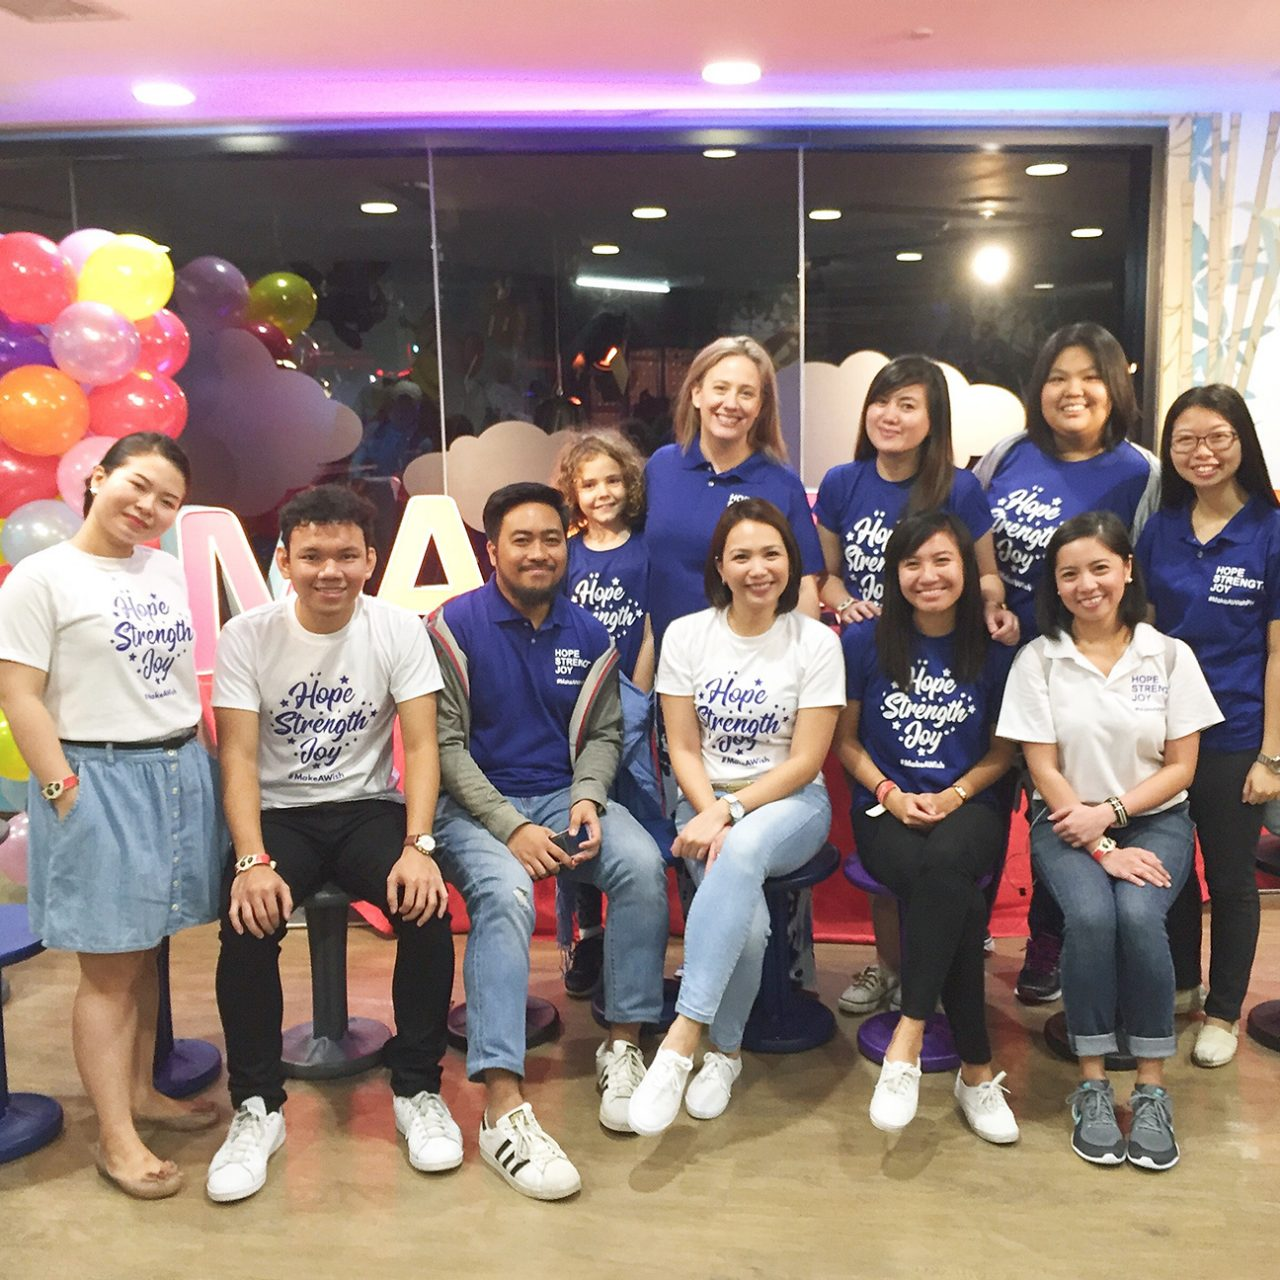 Staff in Manila sold t-shirts to raise money for the children's charity Make a Wish Foundation